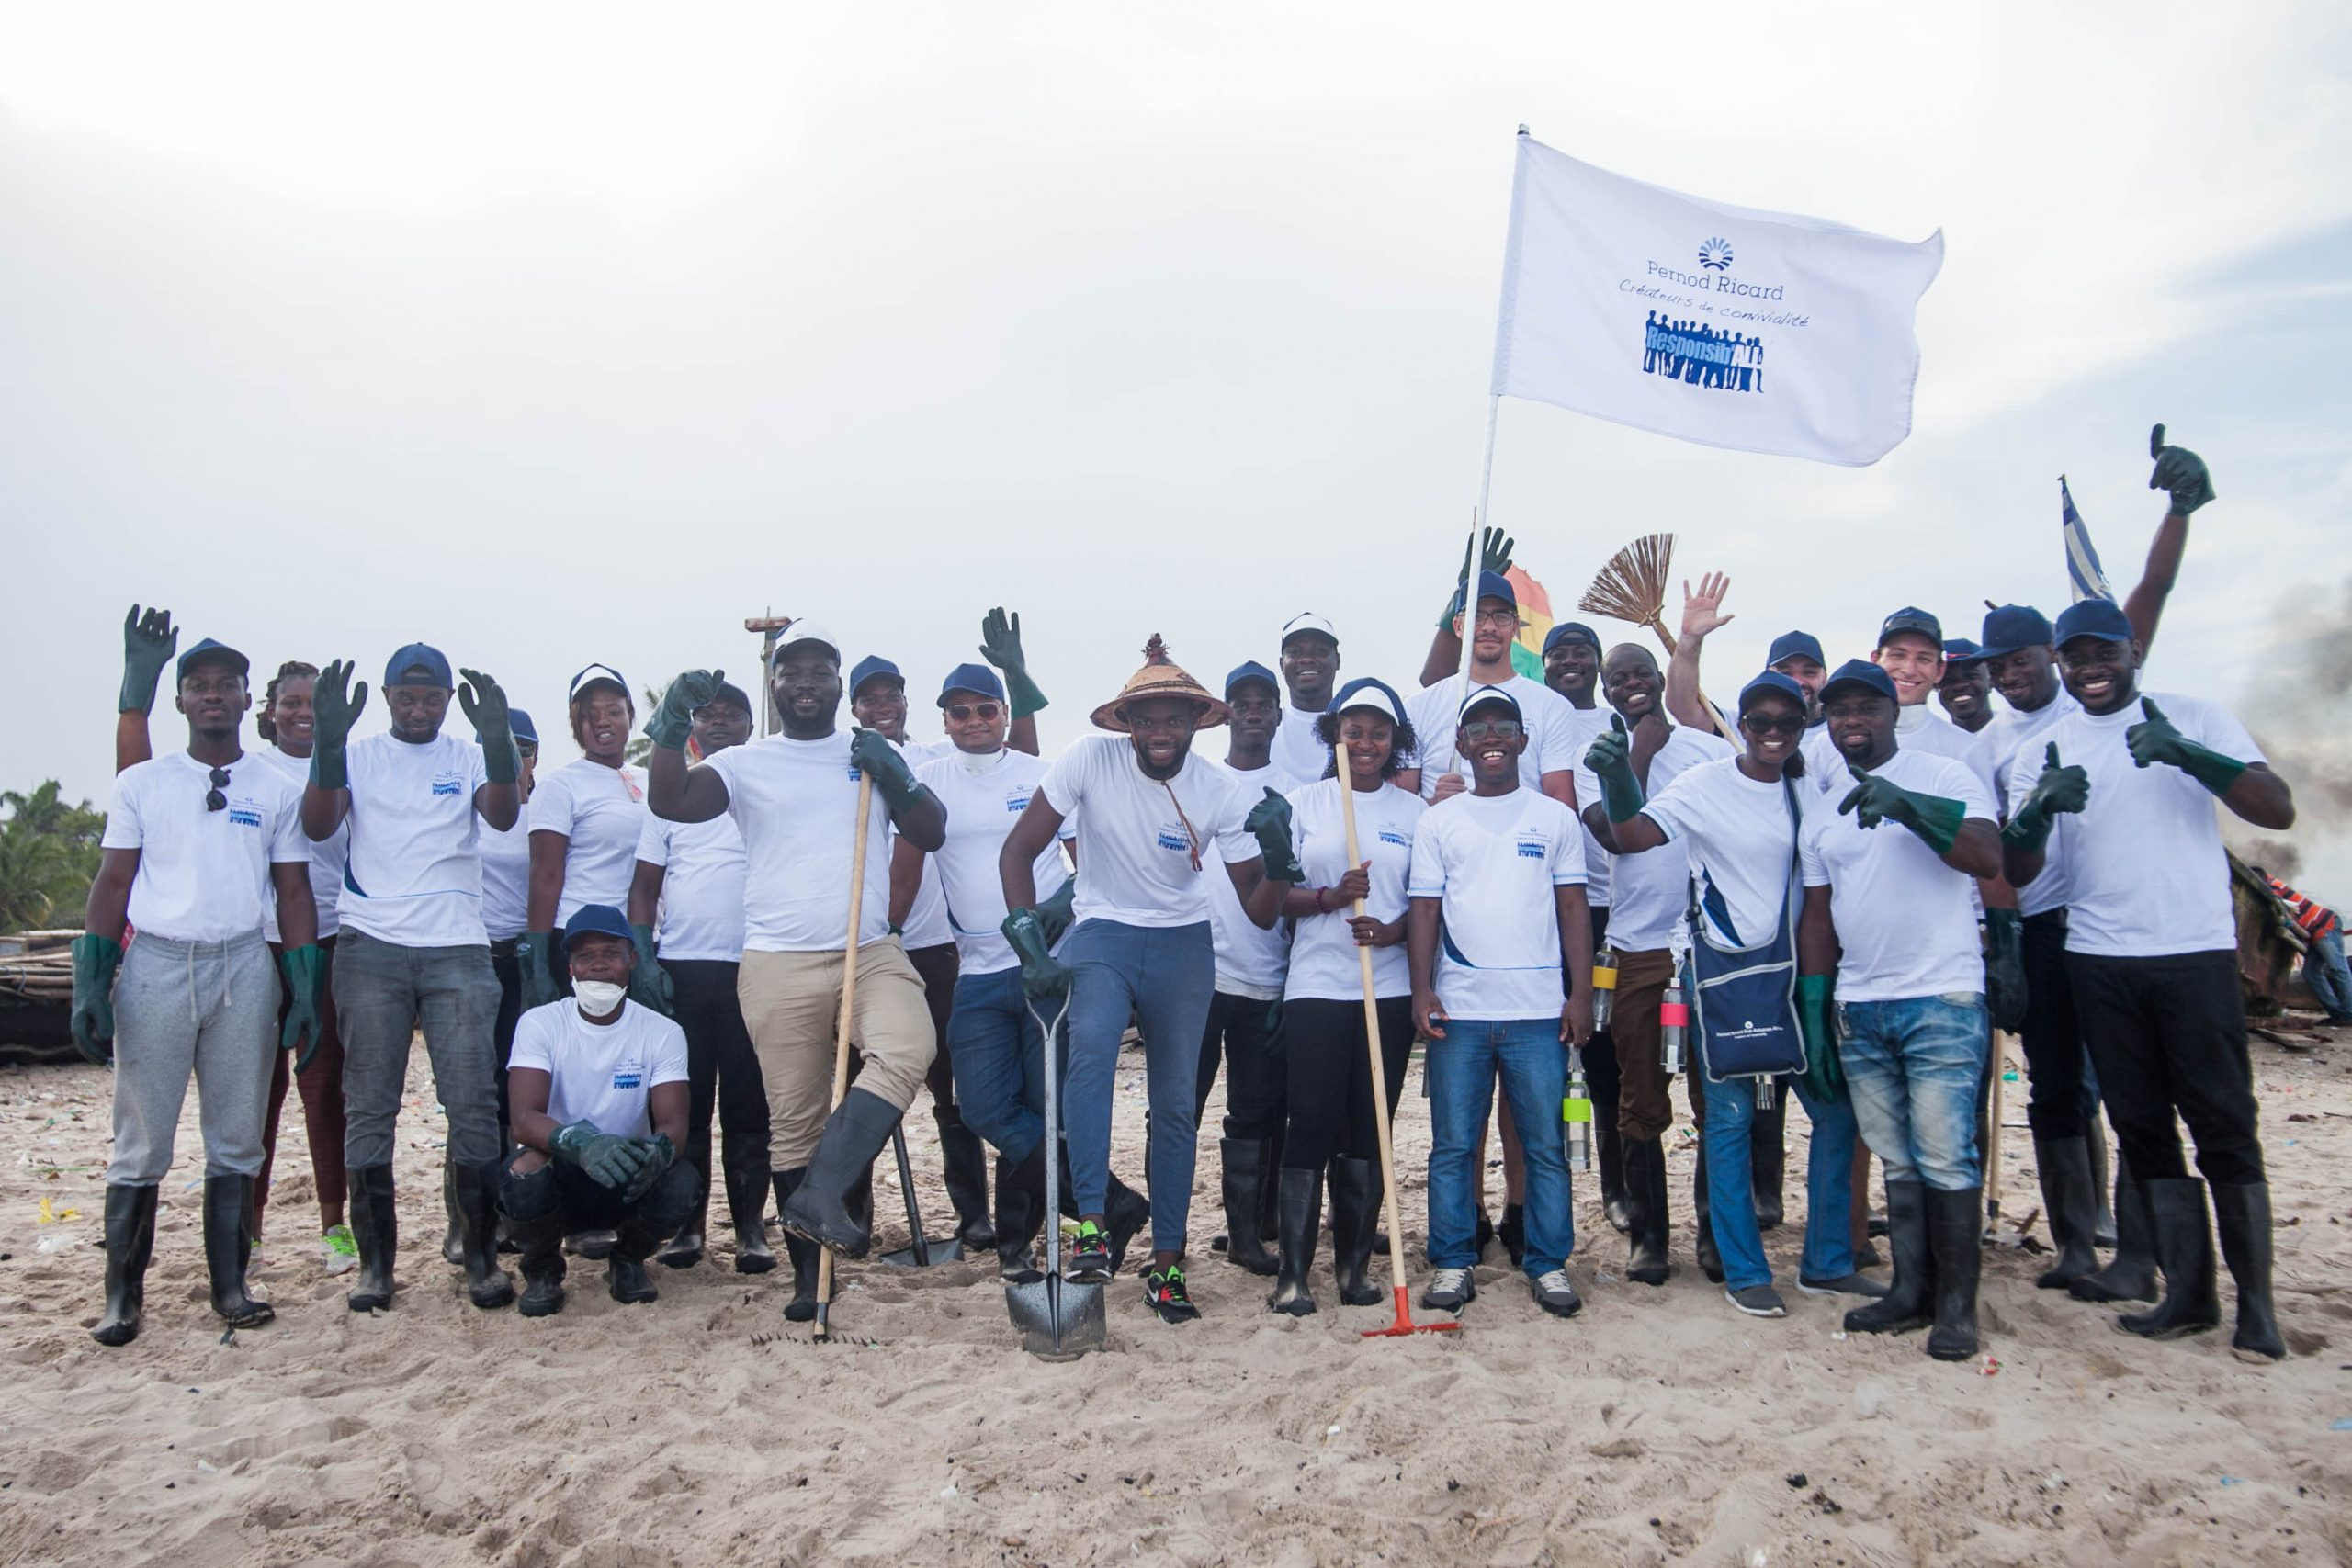 Pernod Ricard Ghana holds 8th edition of Responsib'All Day